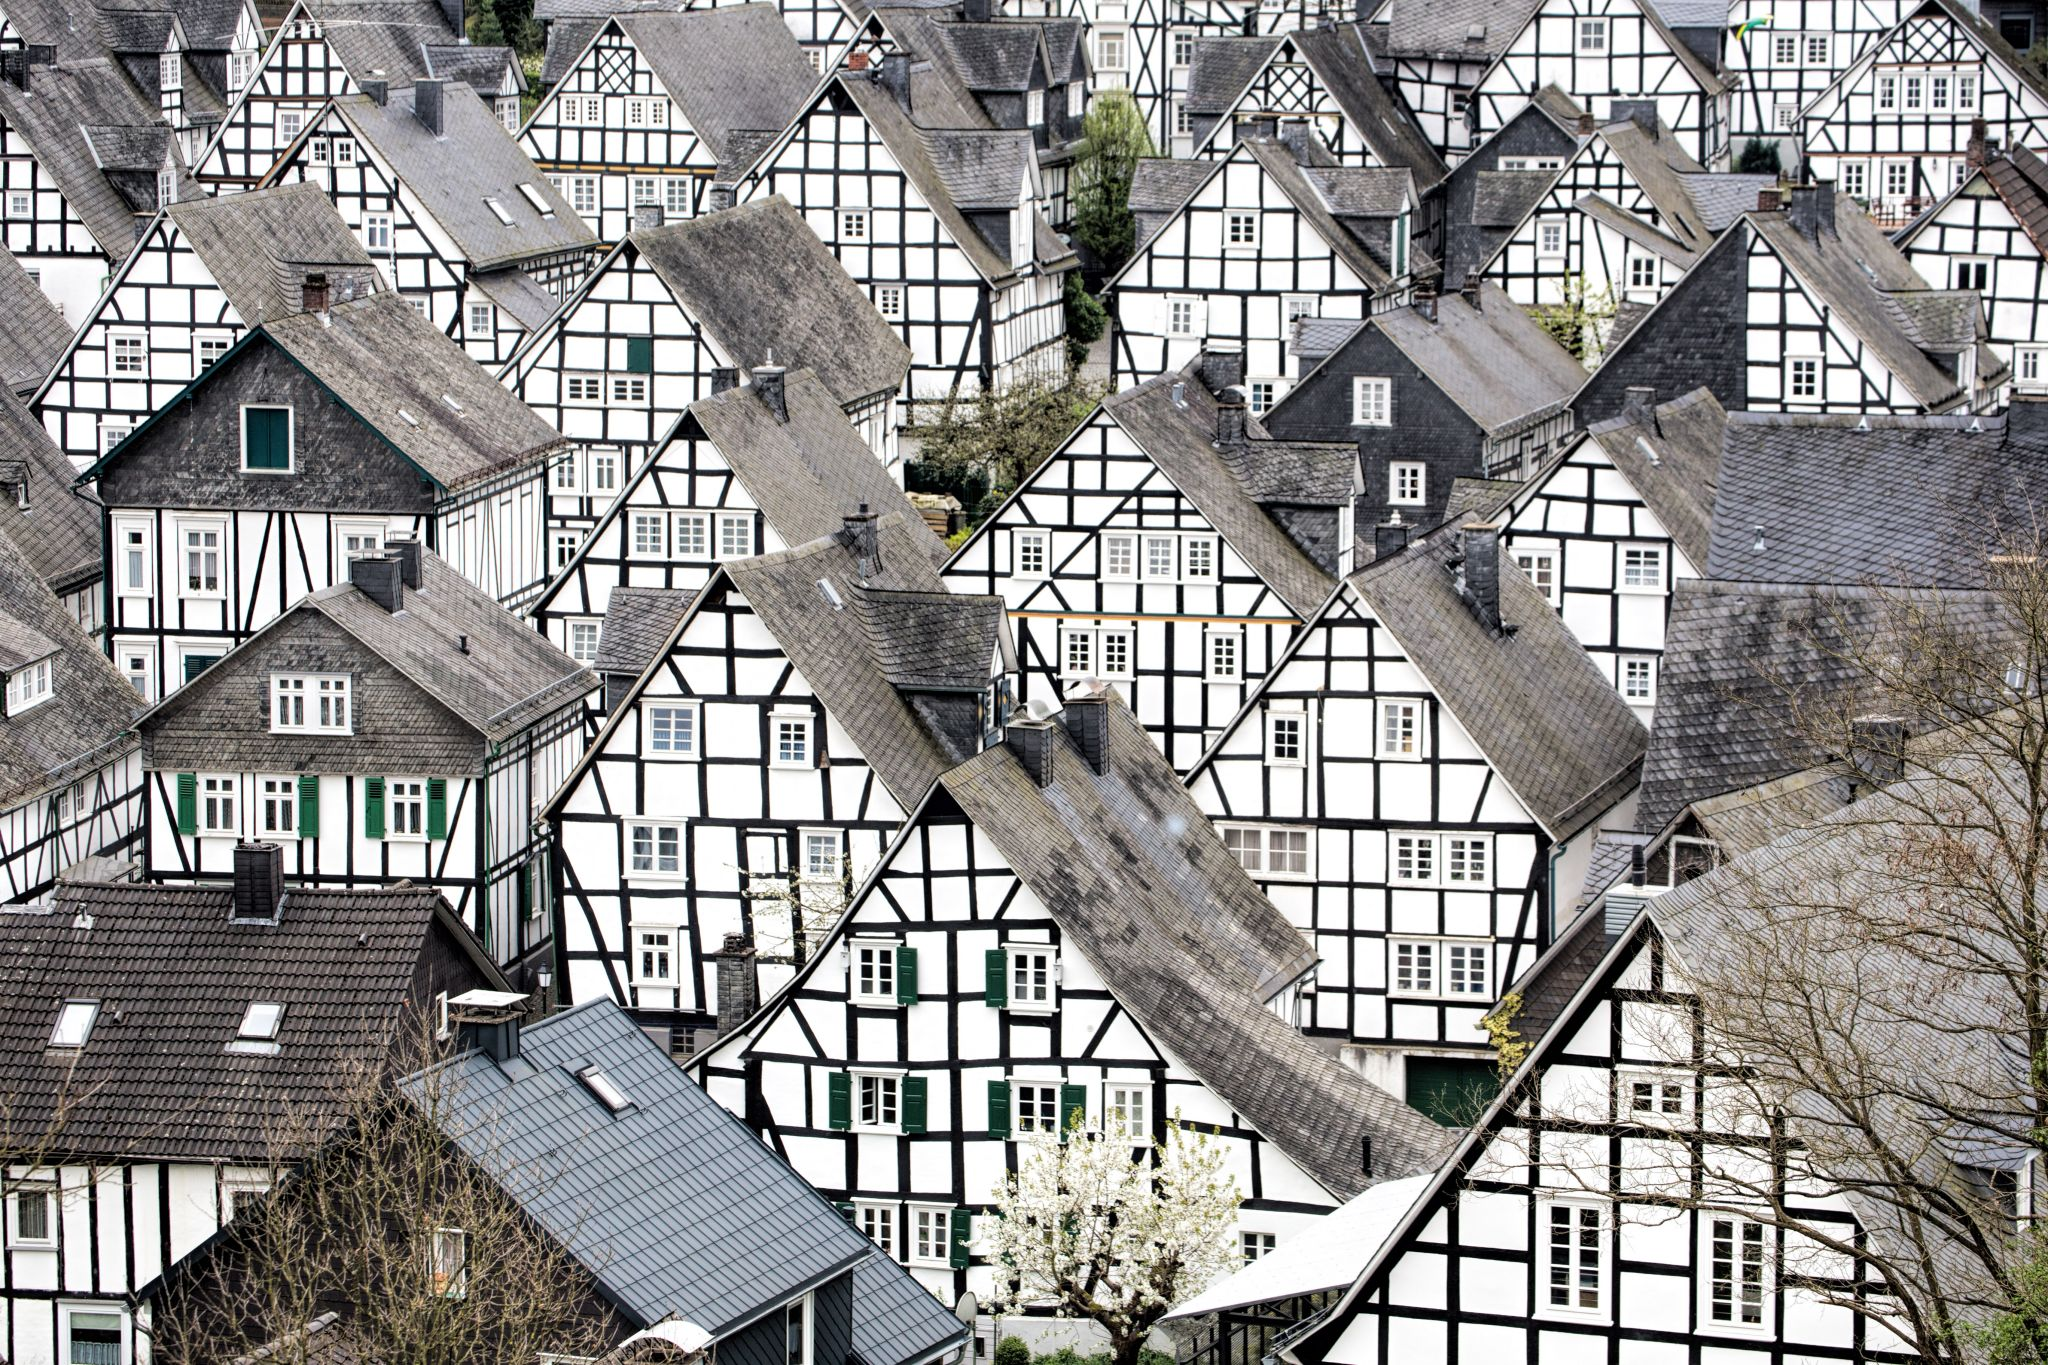 Old city of Freudenberg, Germany